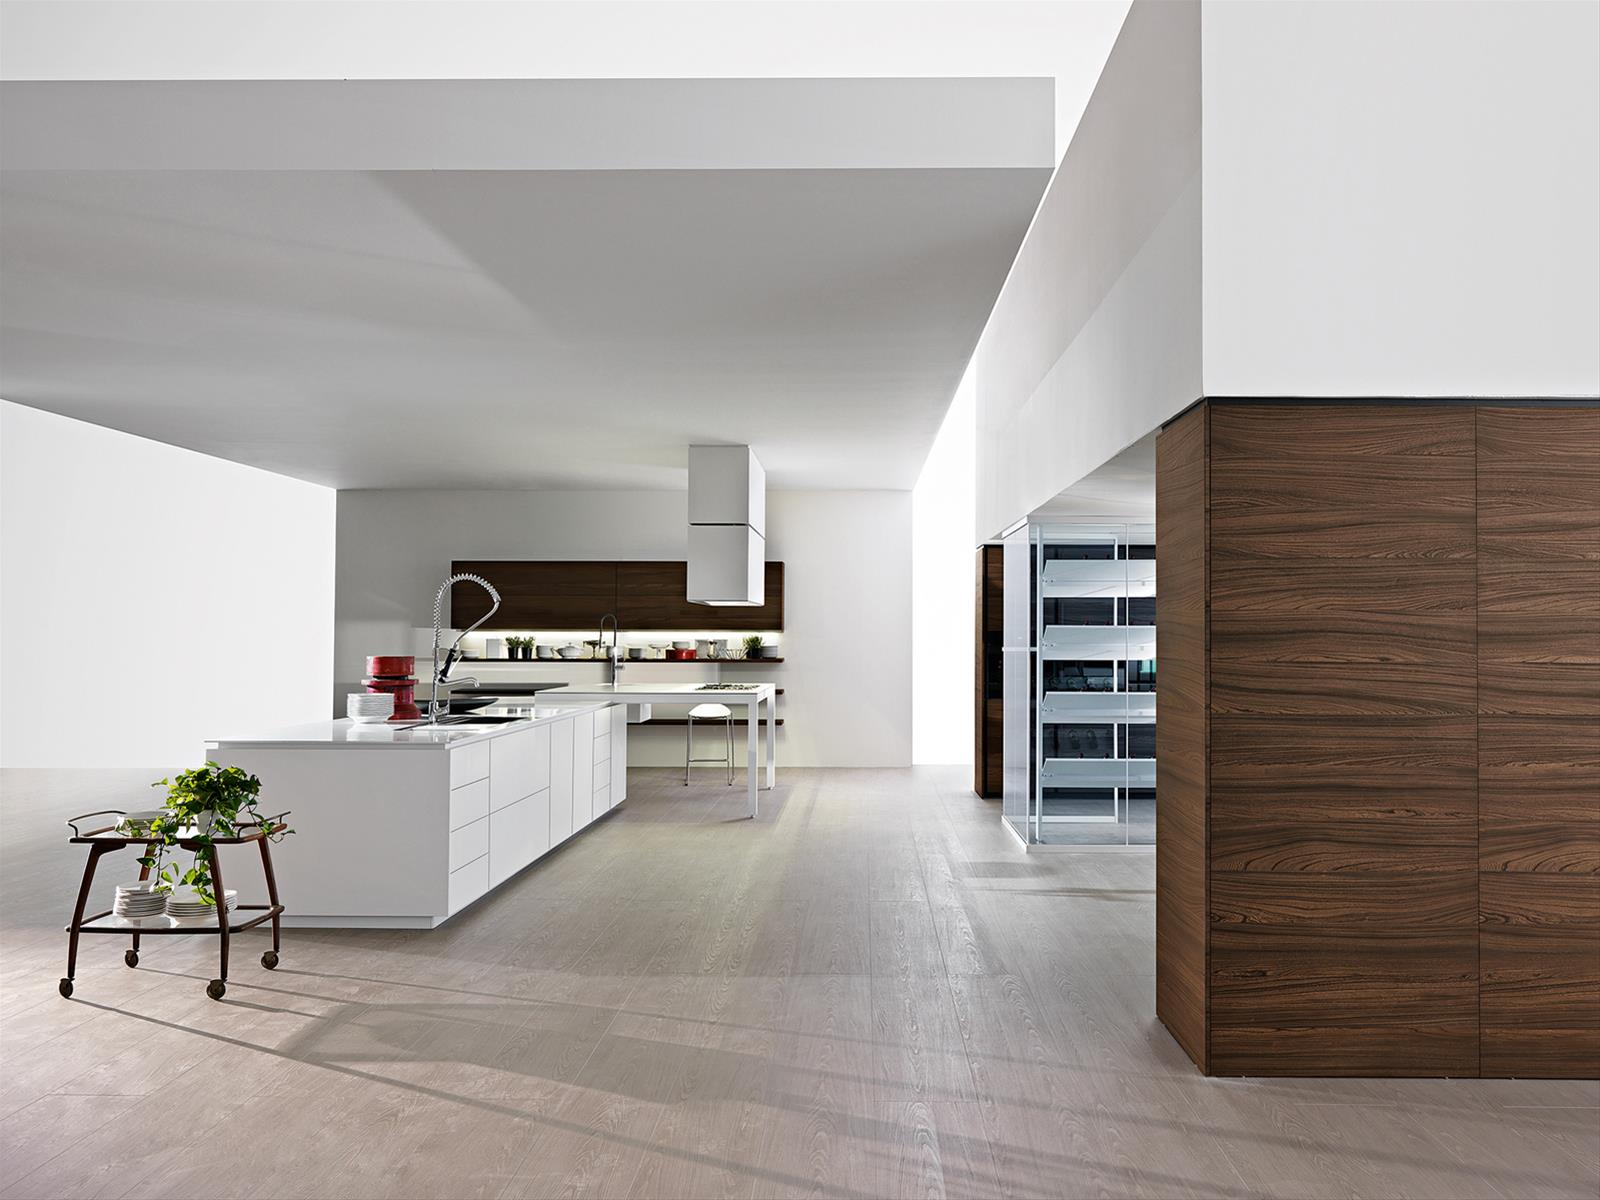 euro design kitchen banco dada kitchens european kitchen design by luca meda 3600